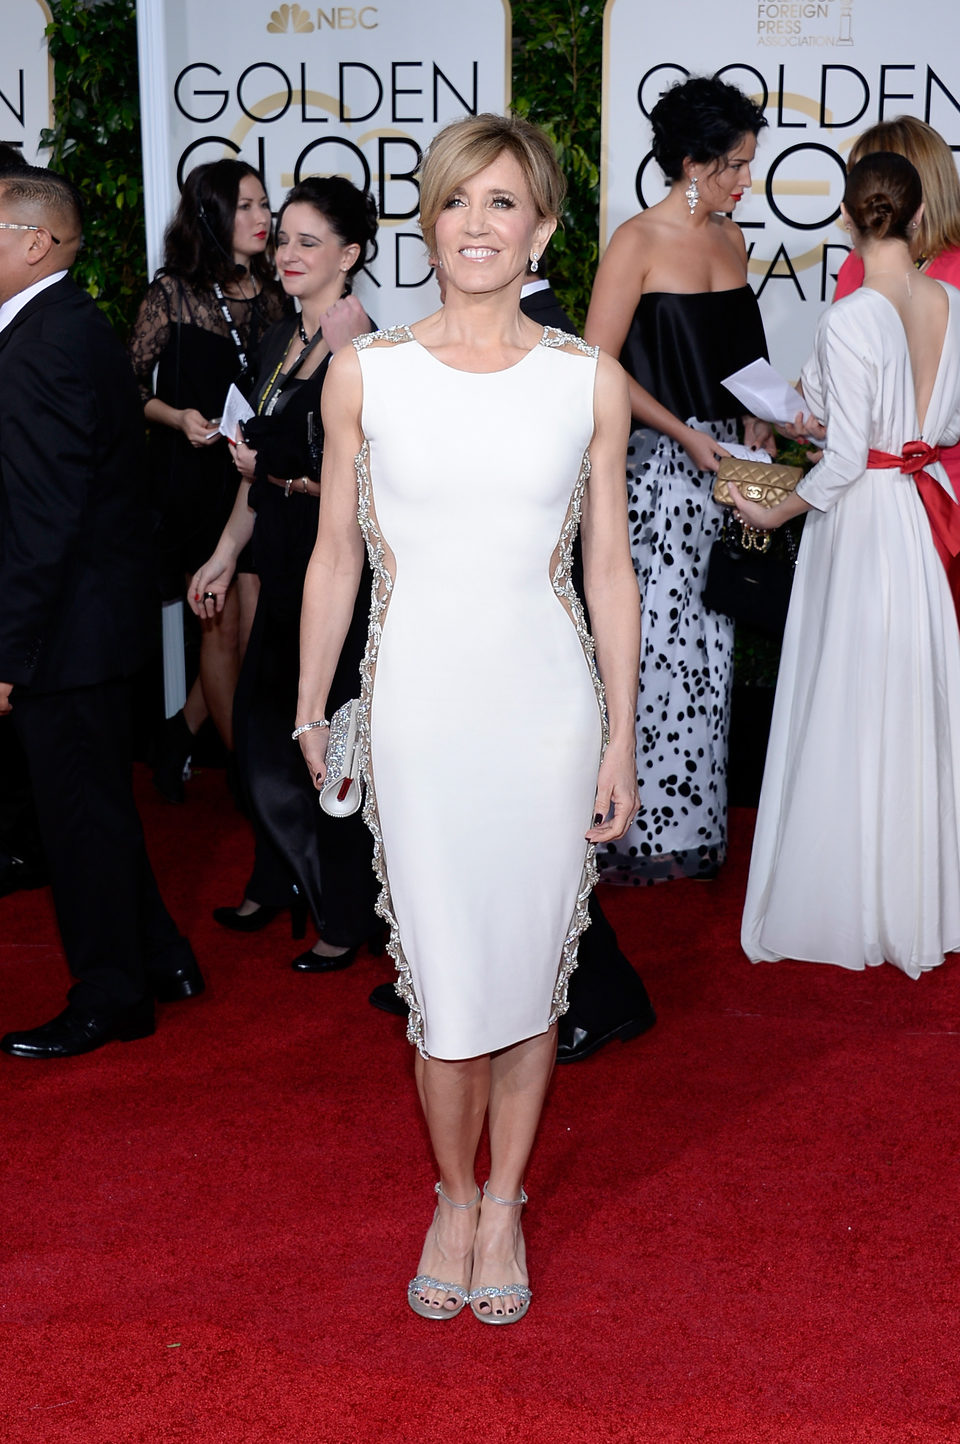 Felicity Huffman at the Golden Globes 2015 red carpet